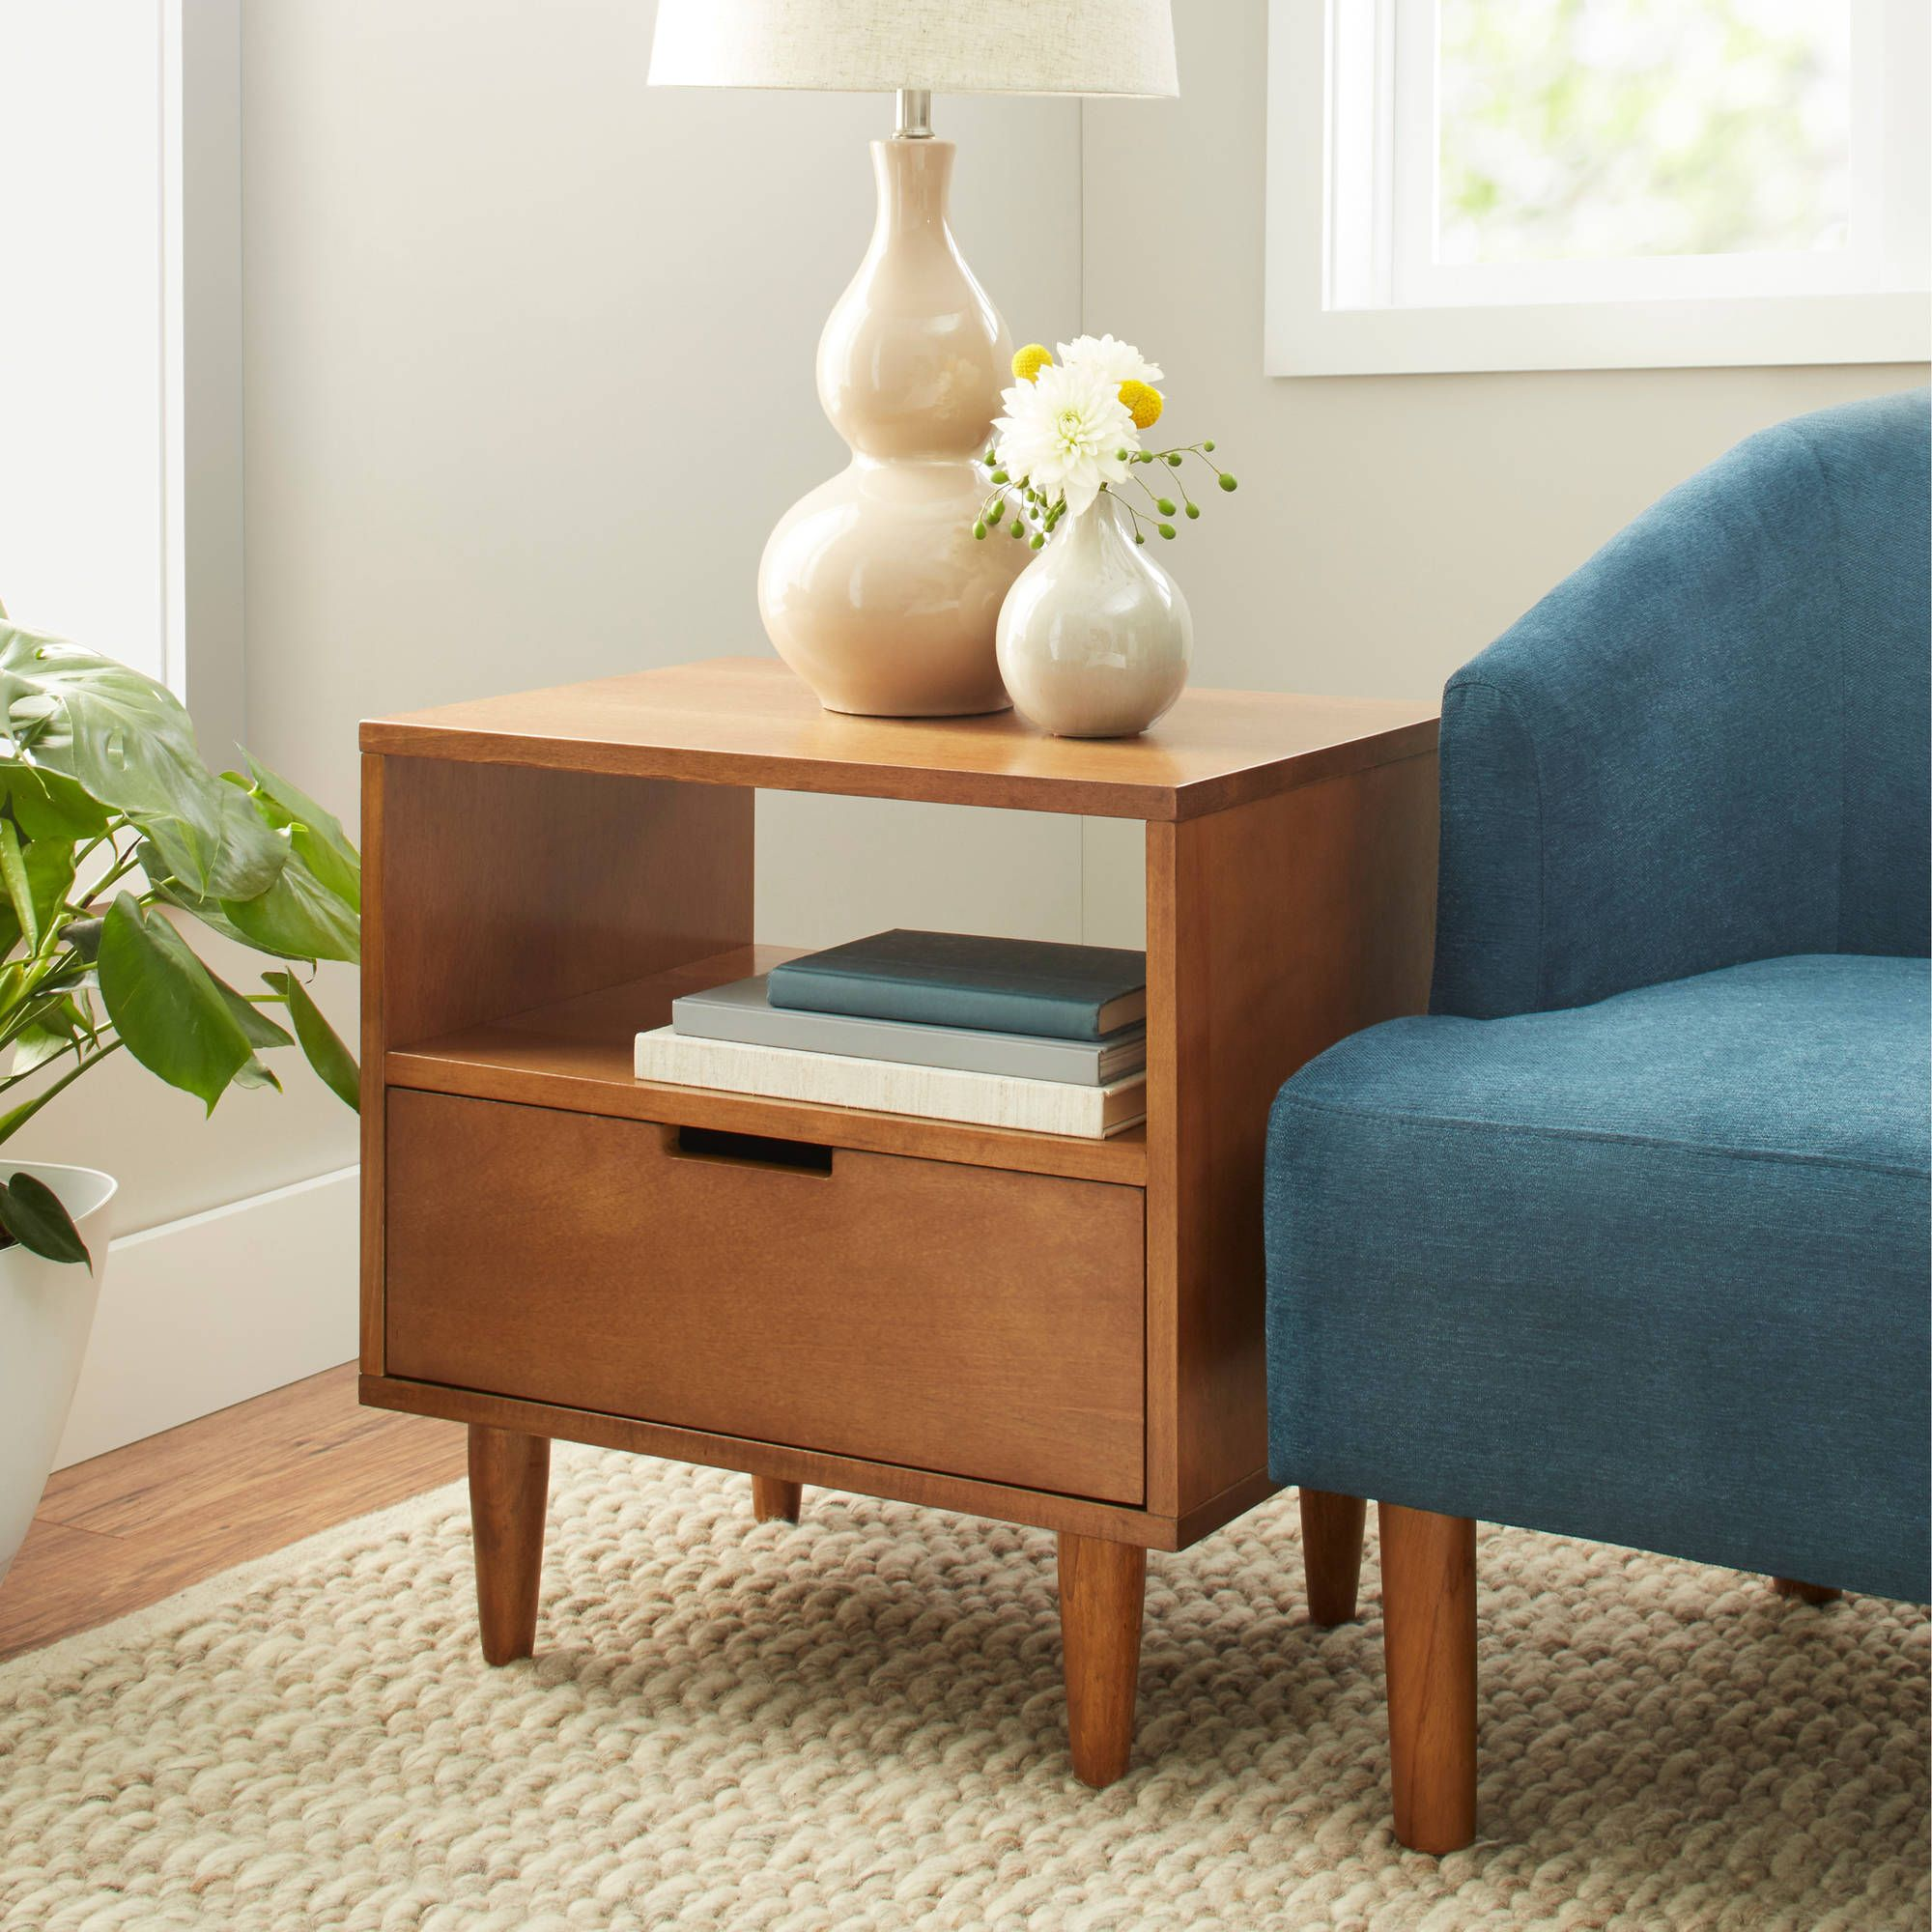 dbcfb656d8f53d0afc7aba67ce6fb5aa - Better Homes And Gardens Flynn Credenza